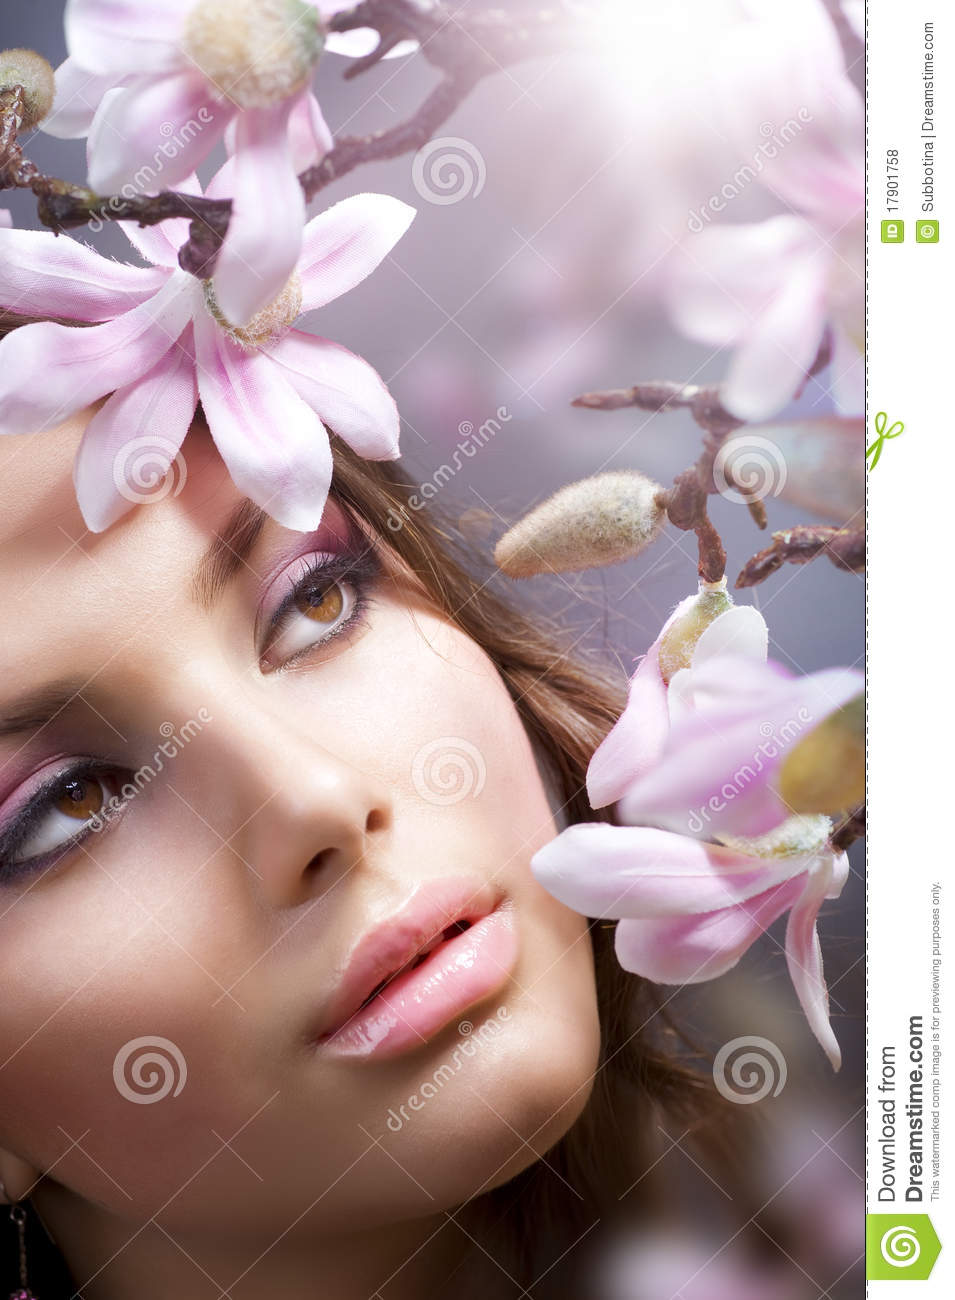 Spa Girl with flowers